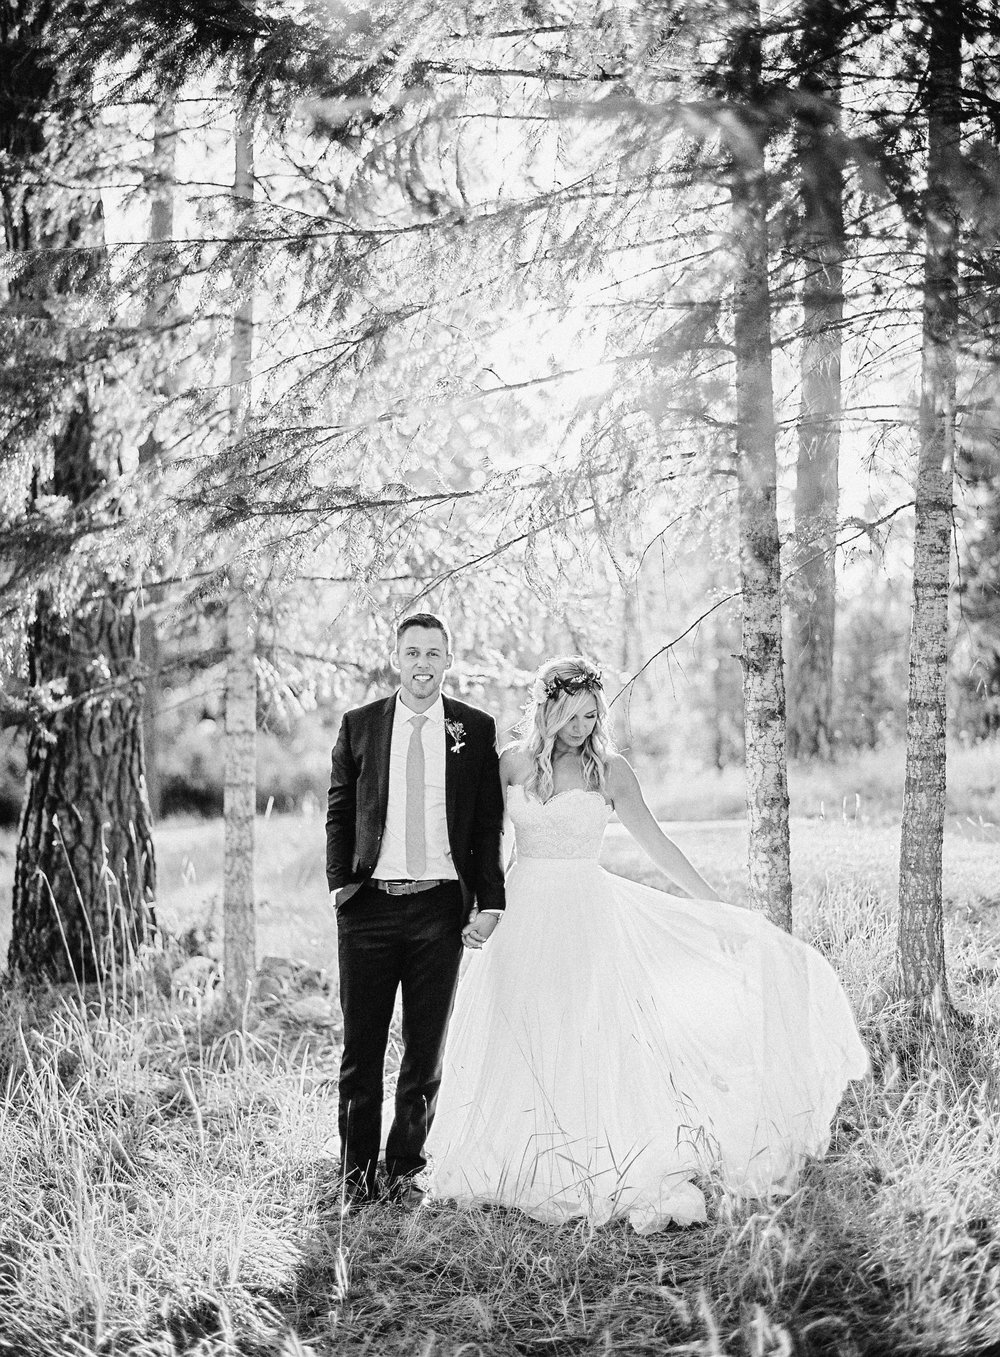 melcasey-hayden-lake-idaho-wedding-ryan-flynn-details-0123.JPG